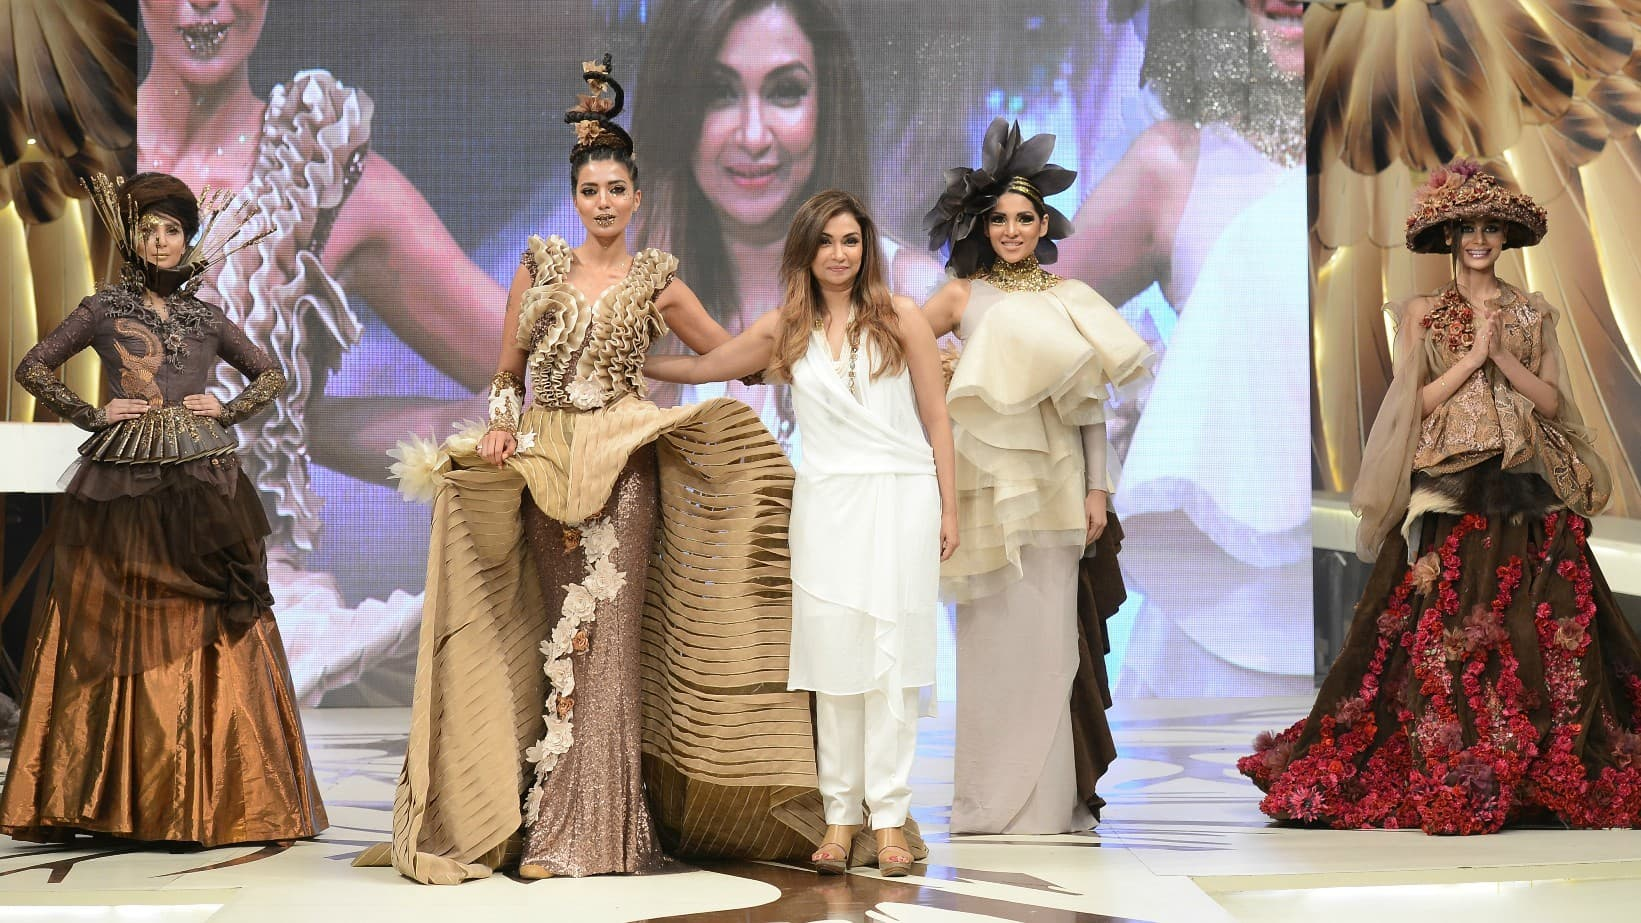 Shamaeel Ansari's presented a chocolate-inspired collection - Photograph by Faisal Farooqui and his team at Dragonfly